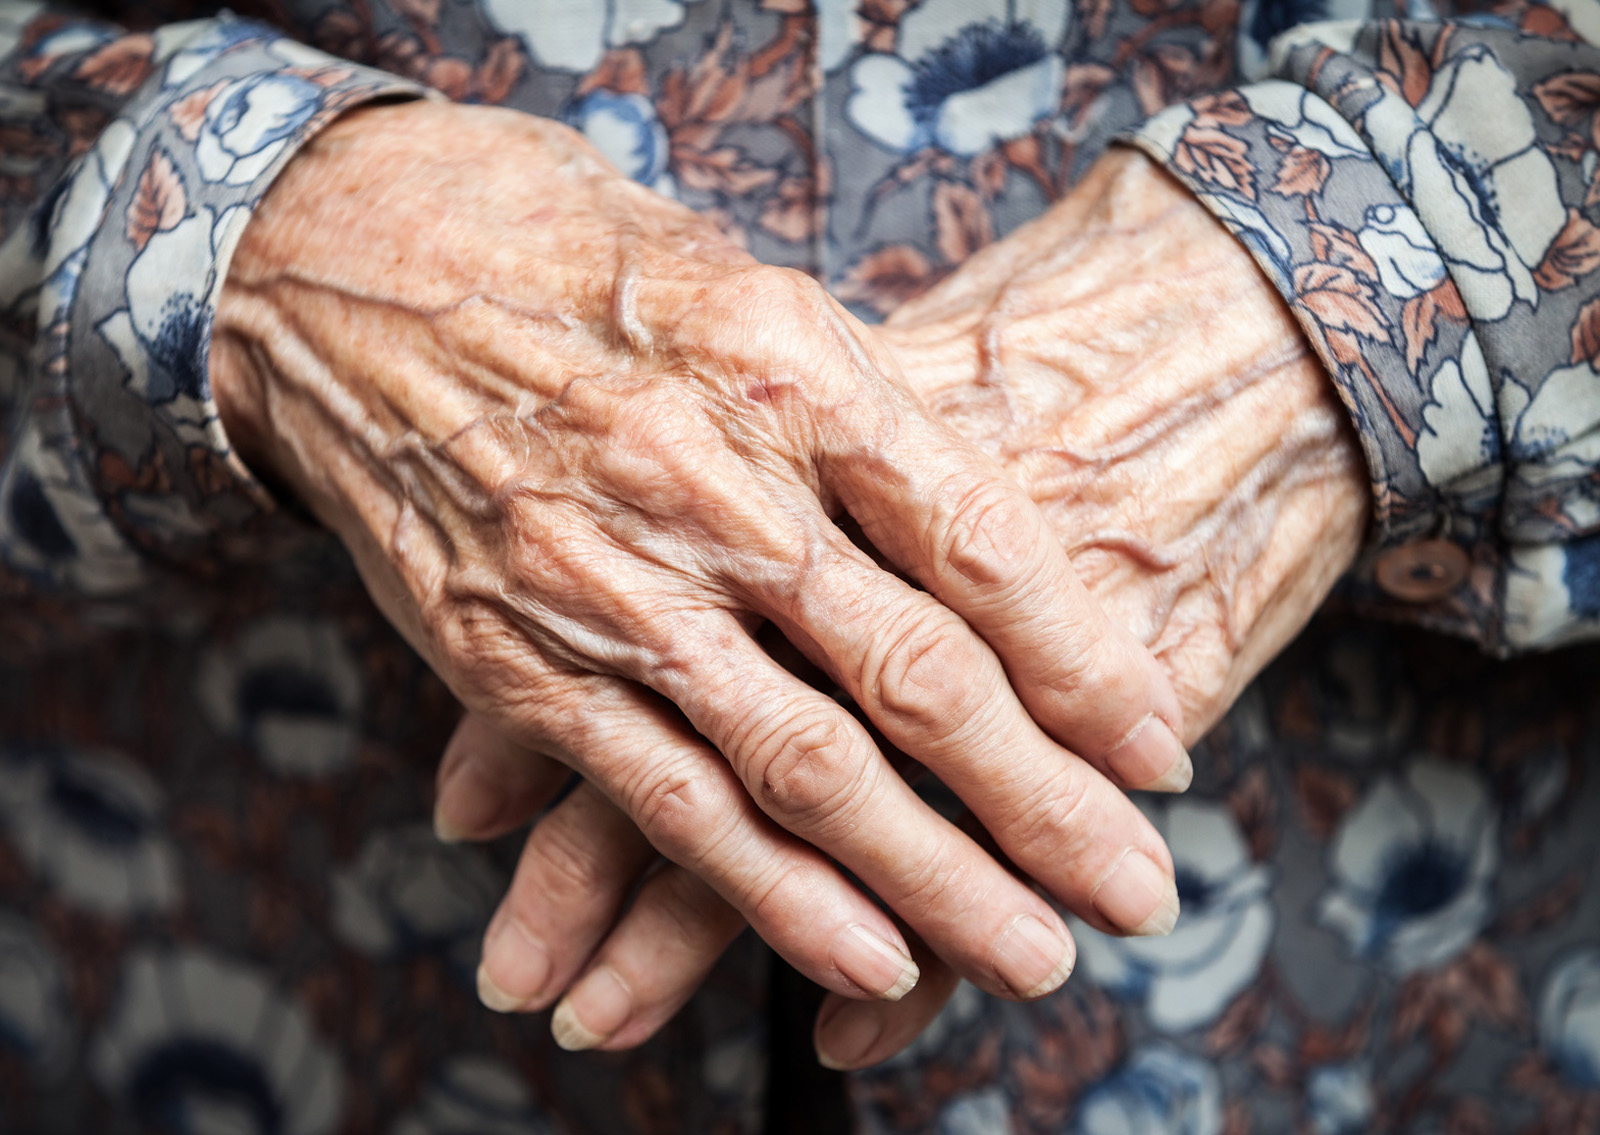 The hands of Emma Morano, the last survivor of the 19th century! Emma-morano-hands-at-age-115-years-old